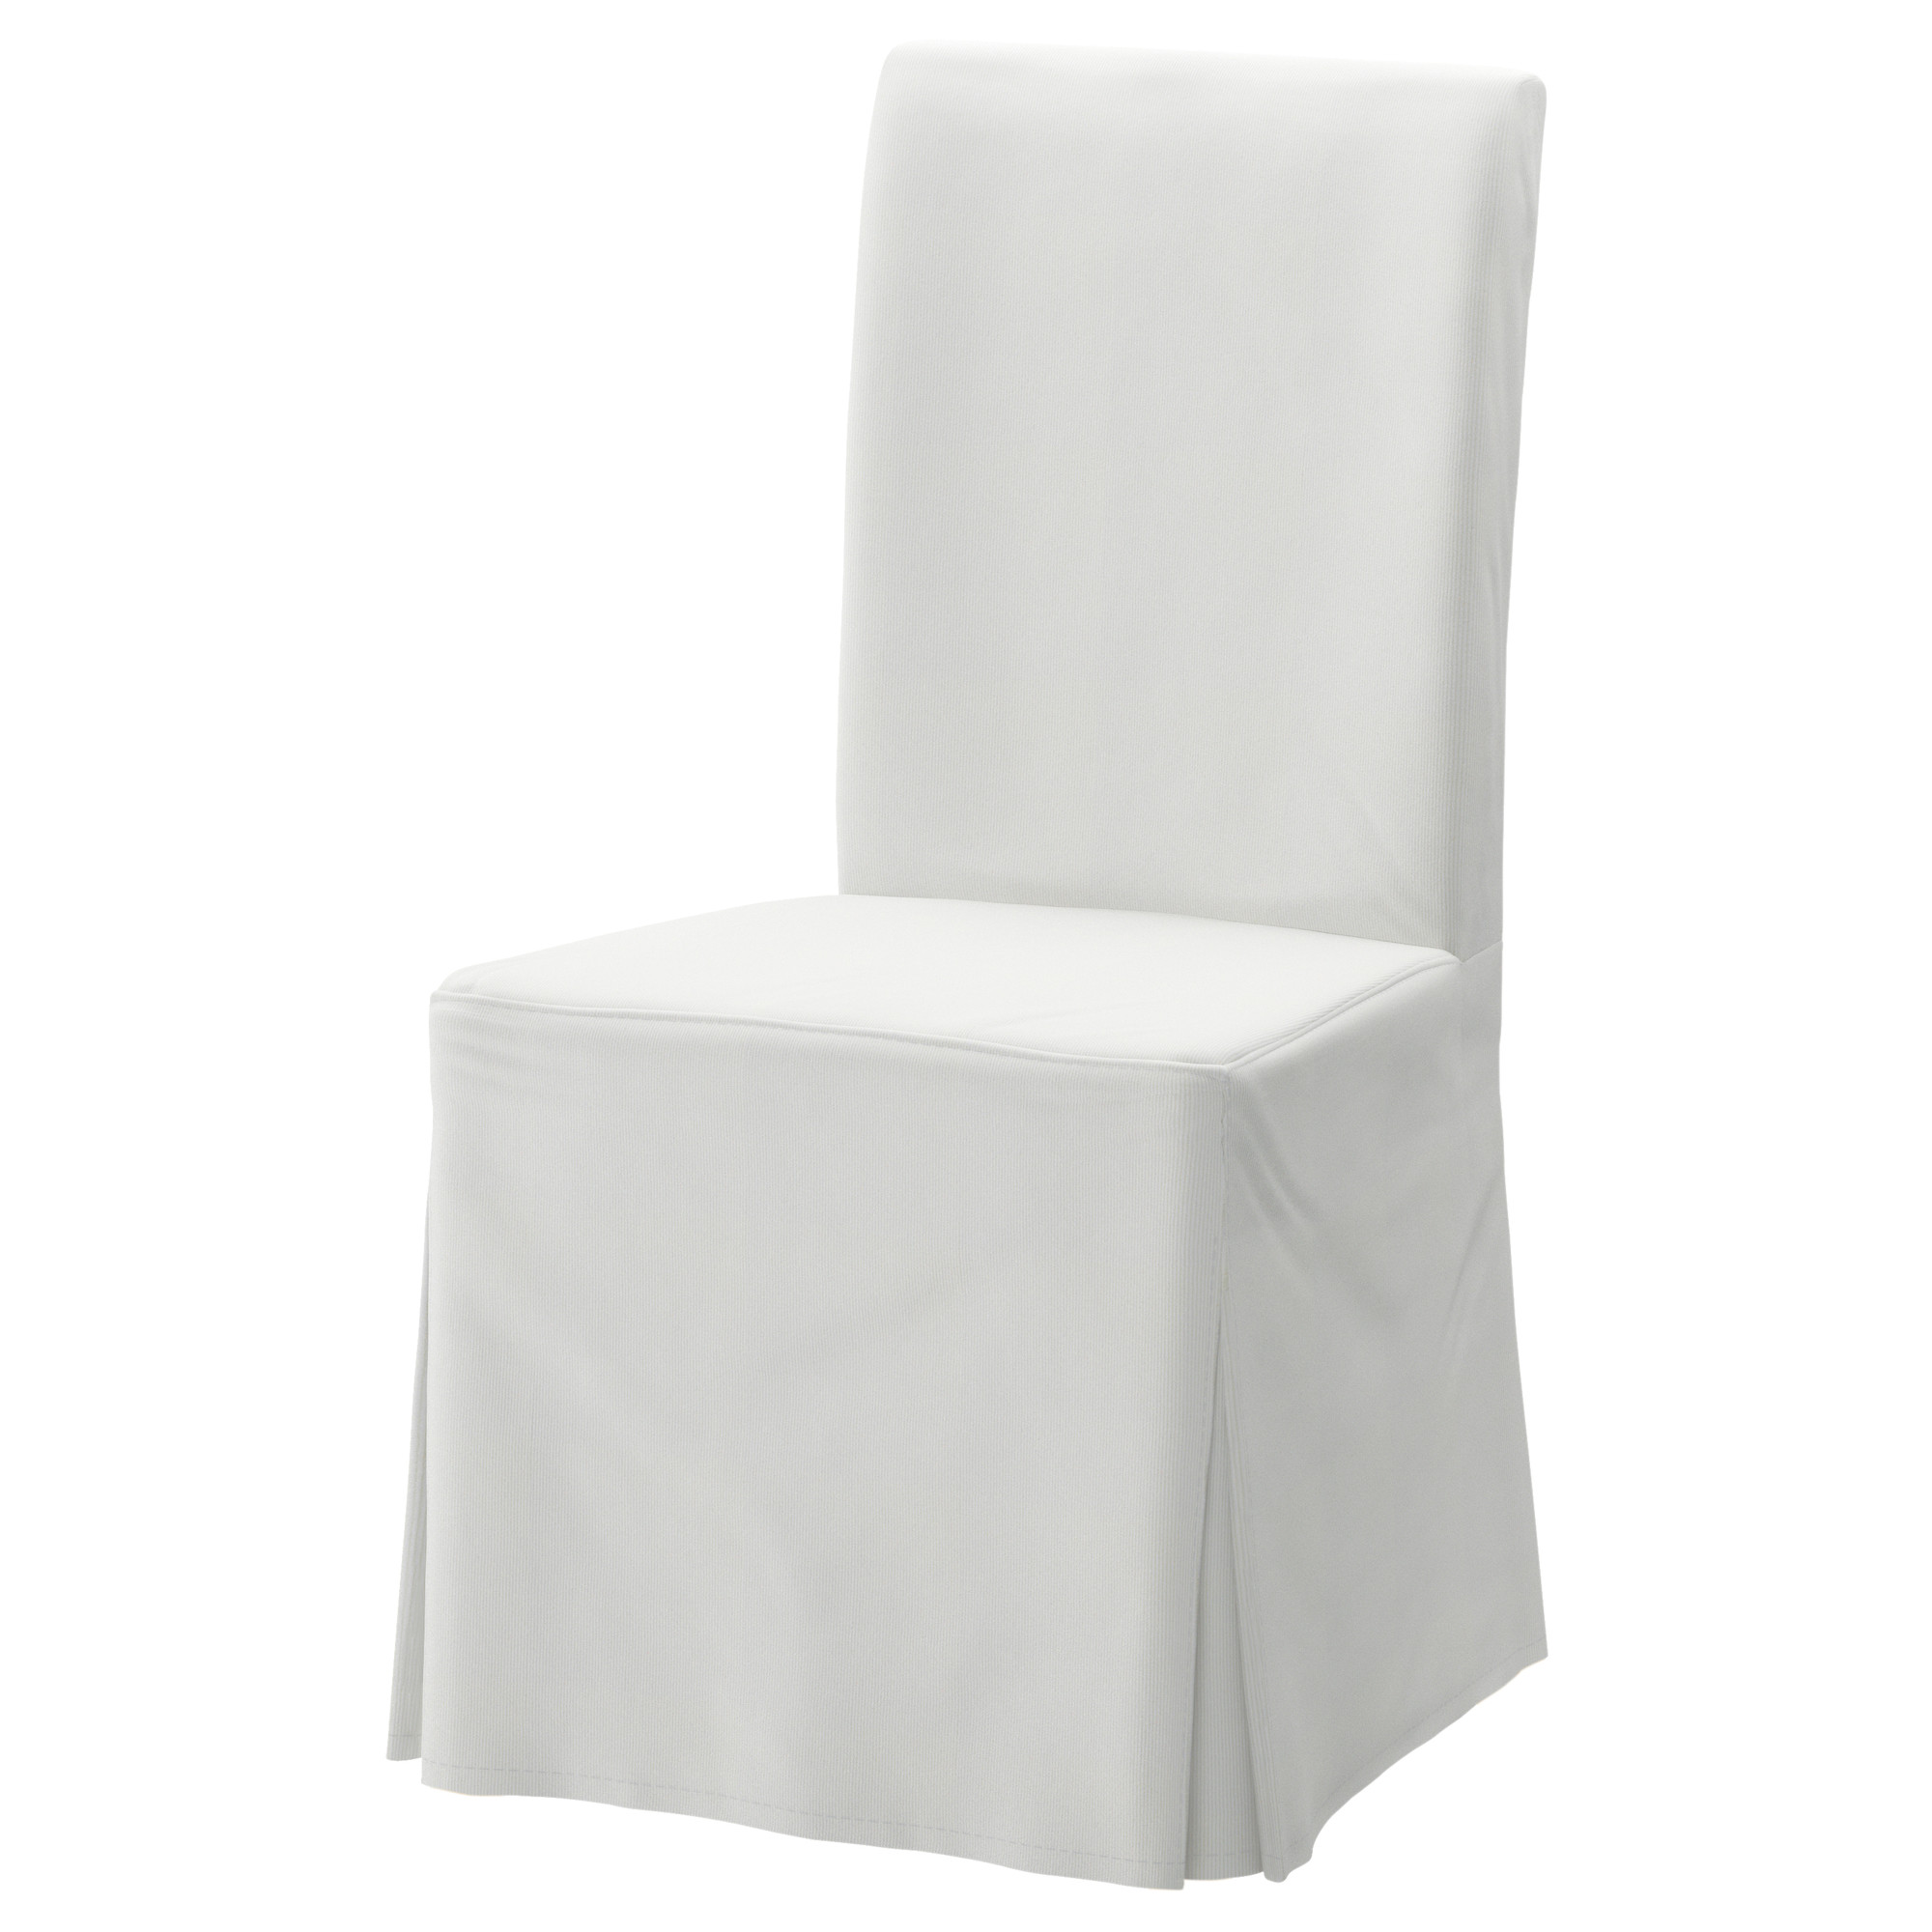 Chair Covers w/ bow